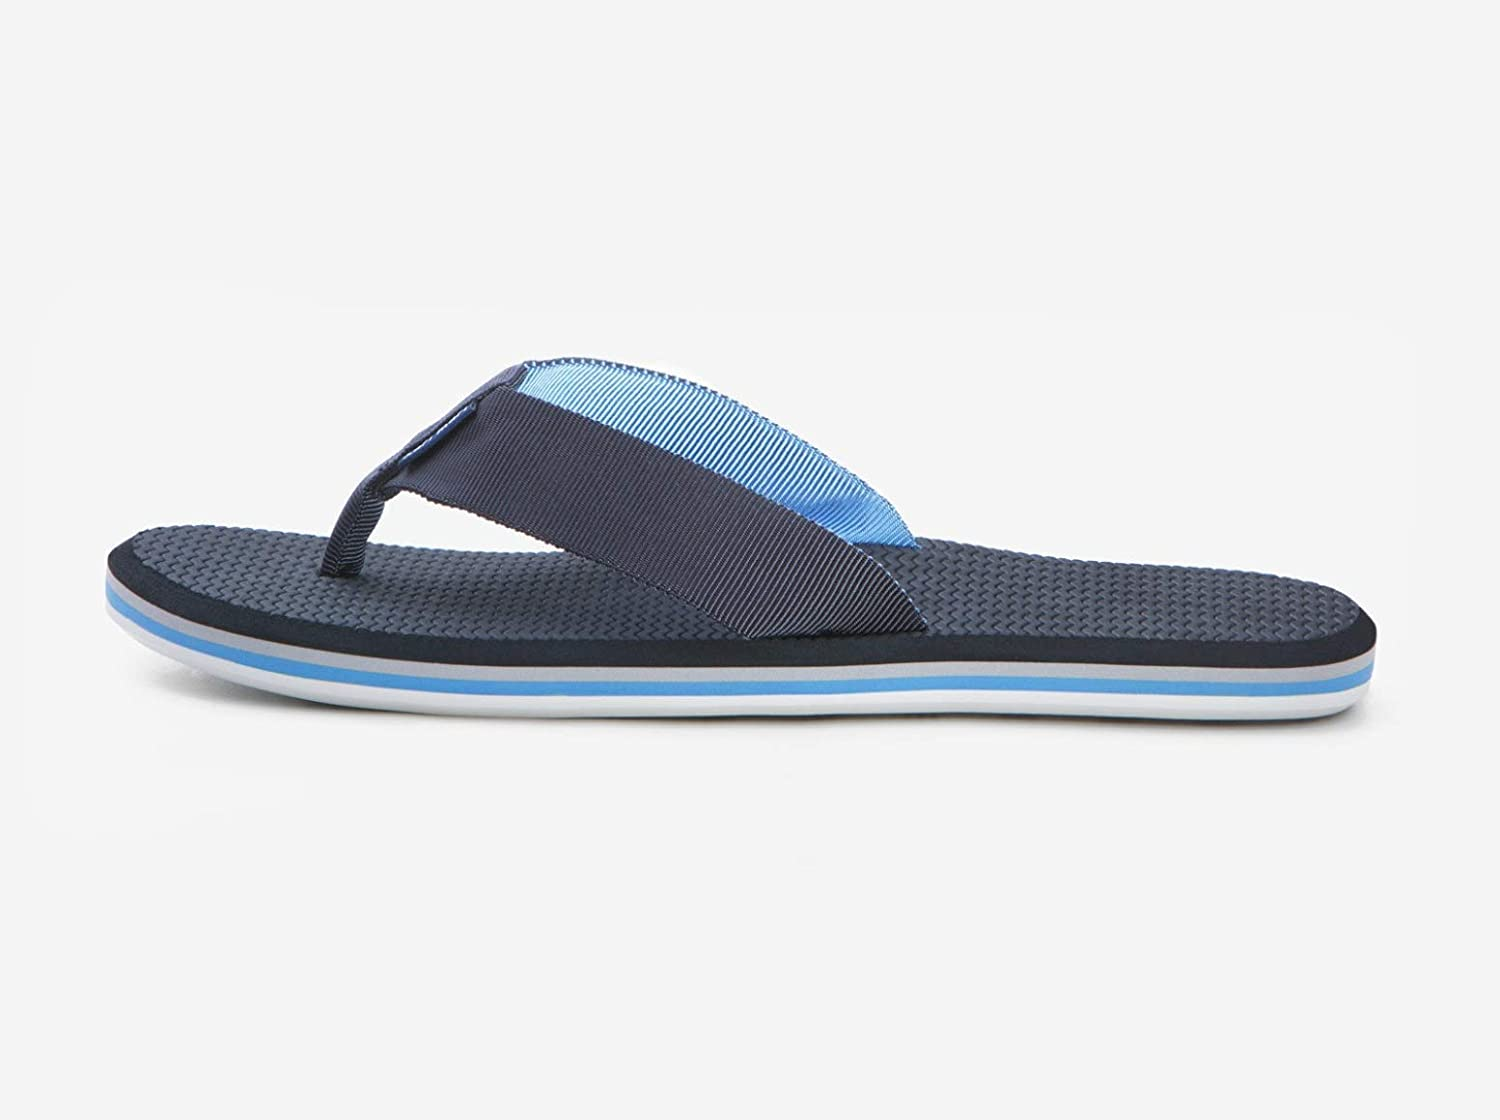 Mens Premium Nubuck Leather Flip Flops with Memory Foam-Lined Nylon Straps and Firm Arch Support Hari Mari Scouts